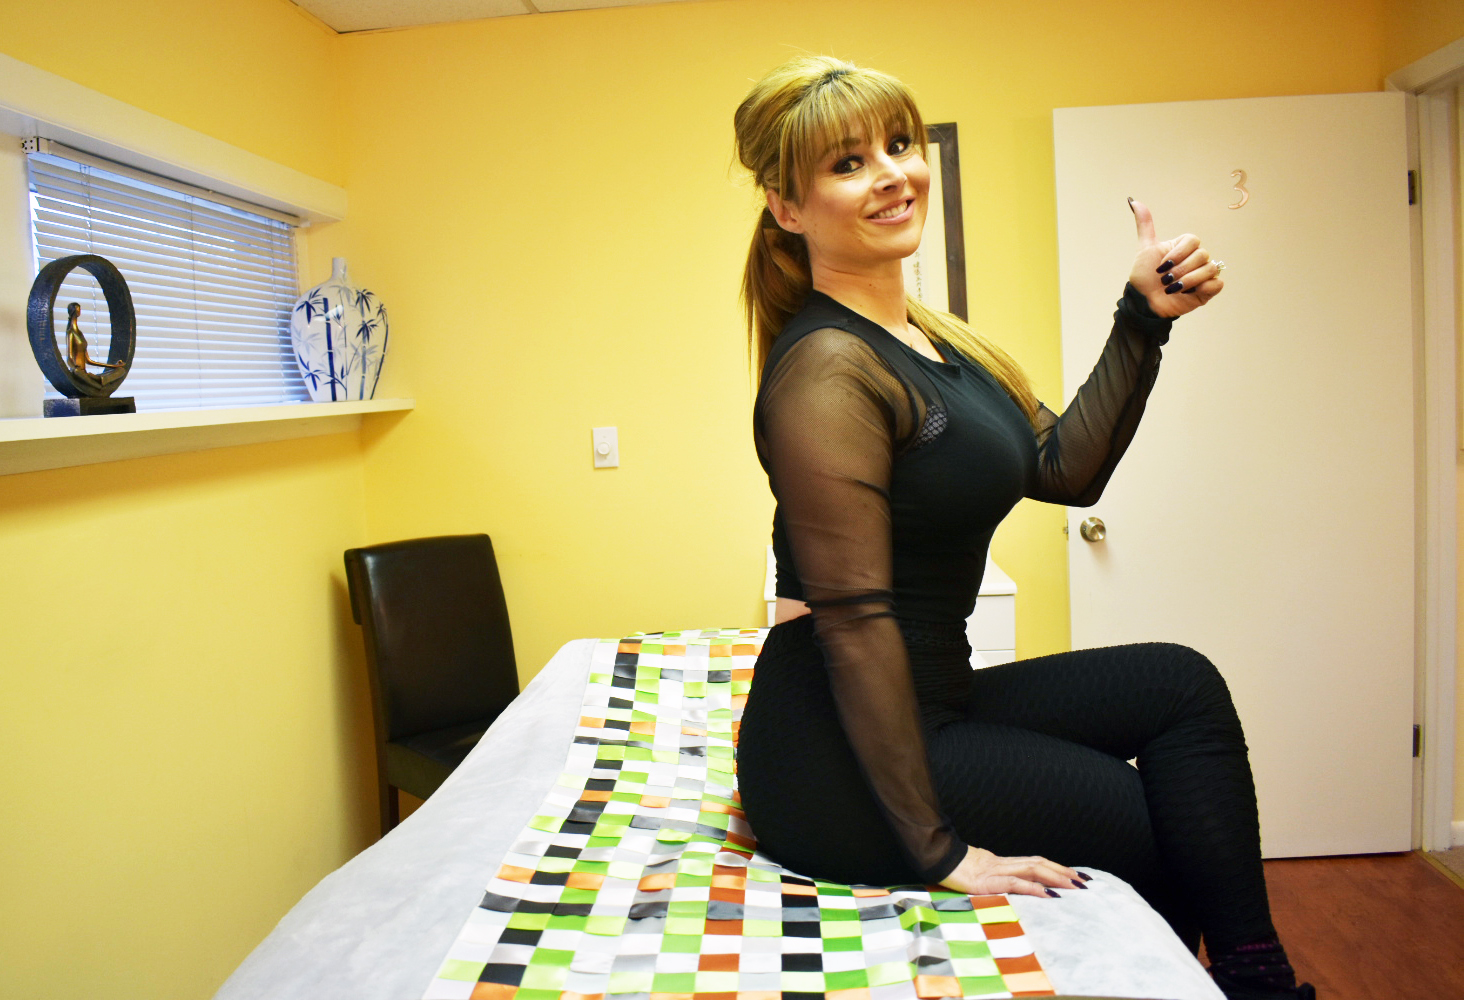 Fitness Professional Gloria Gomez Proper Posture By Walgreens at 45 South Ave East Cranford at Hayk Zar LMT Clinical and Medical Massage Therapy and Qigong Somatics in Cranford and Westfield NJ Back Pain Neck Pain Injury Stress Anxiety Depression.jpg